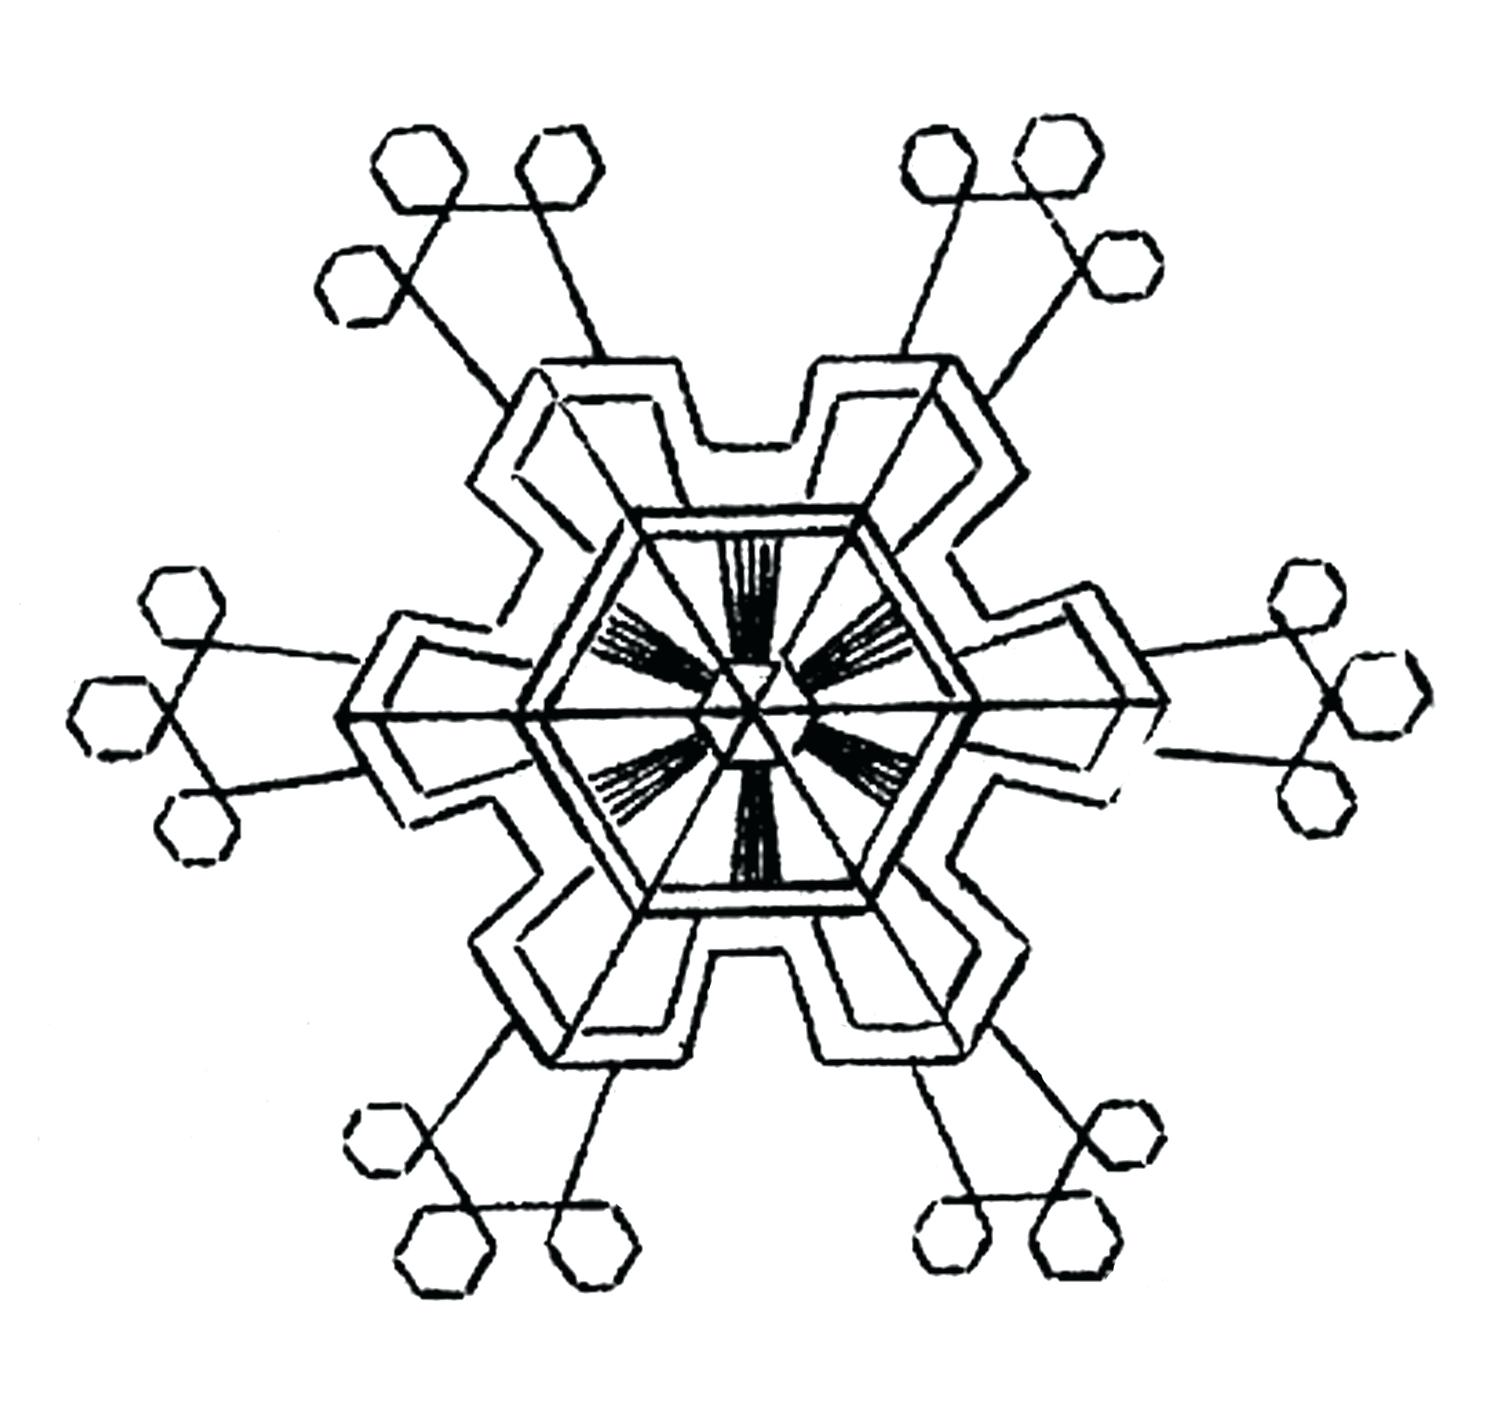 1500x1402 Coloring Excellent Snowflake Color Sheet. Christmas Snowflake